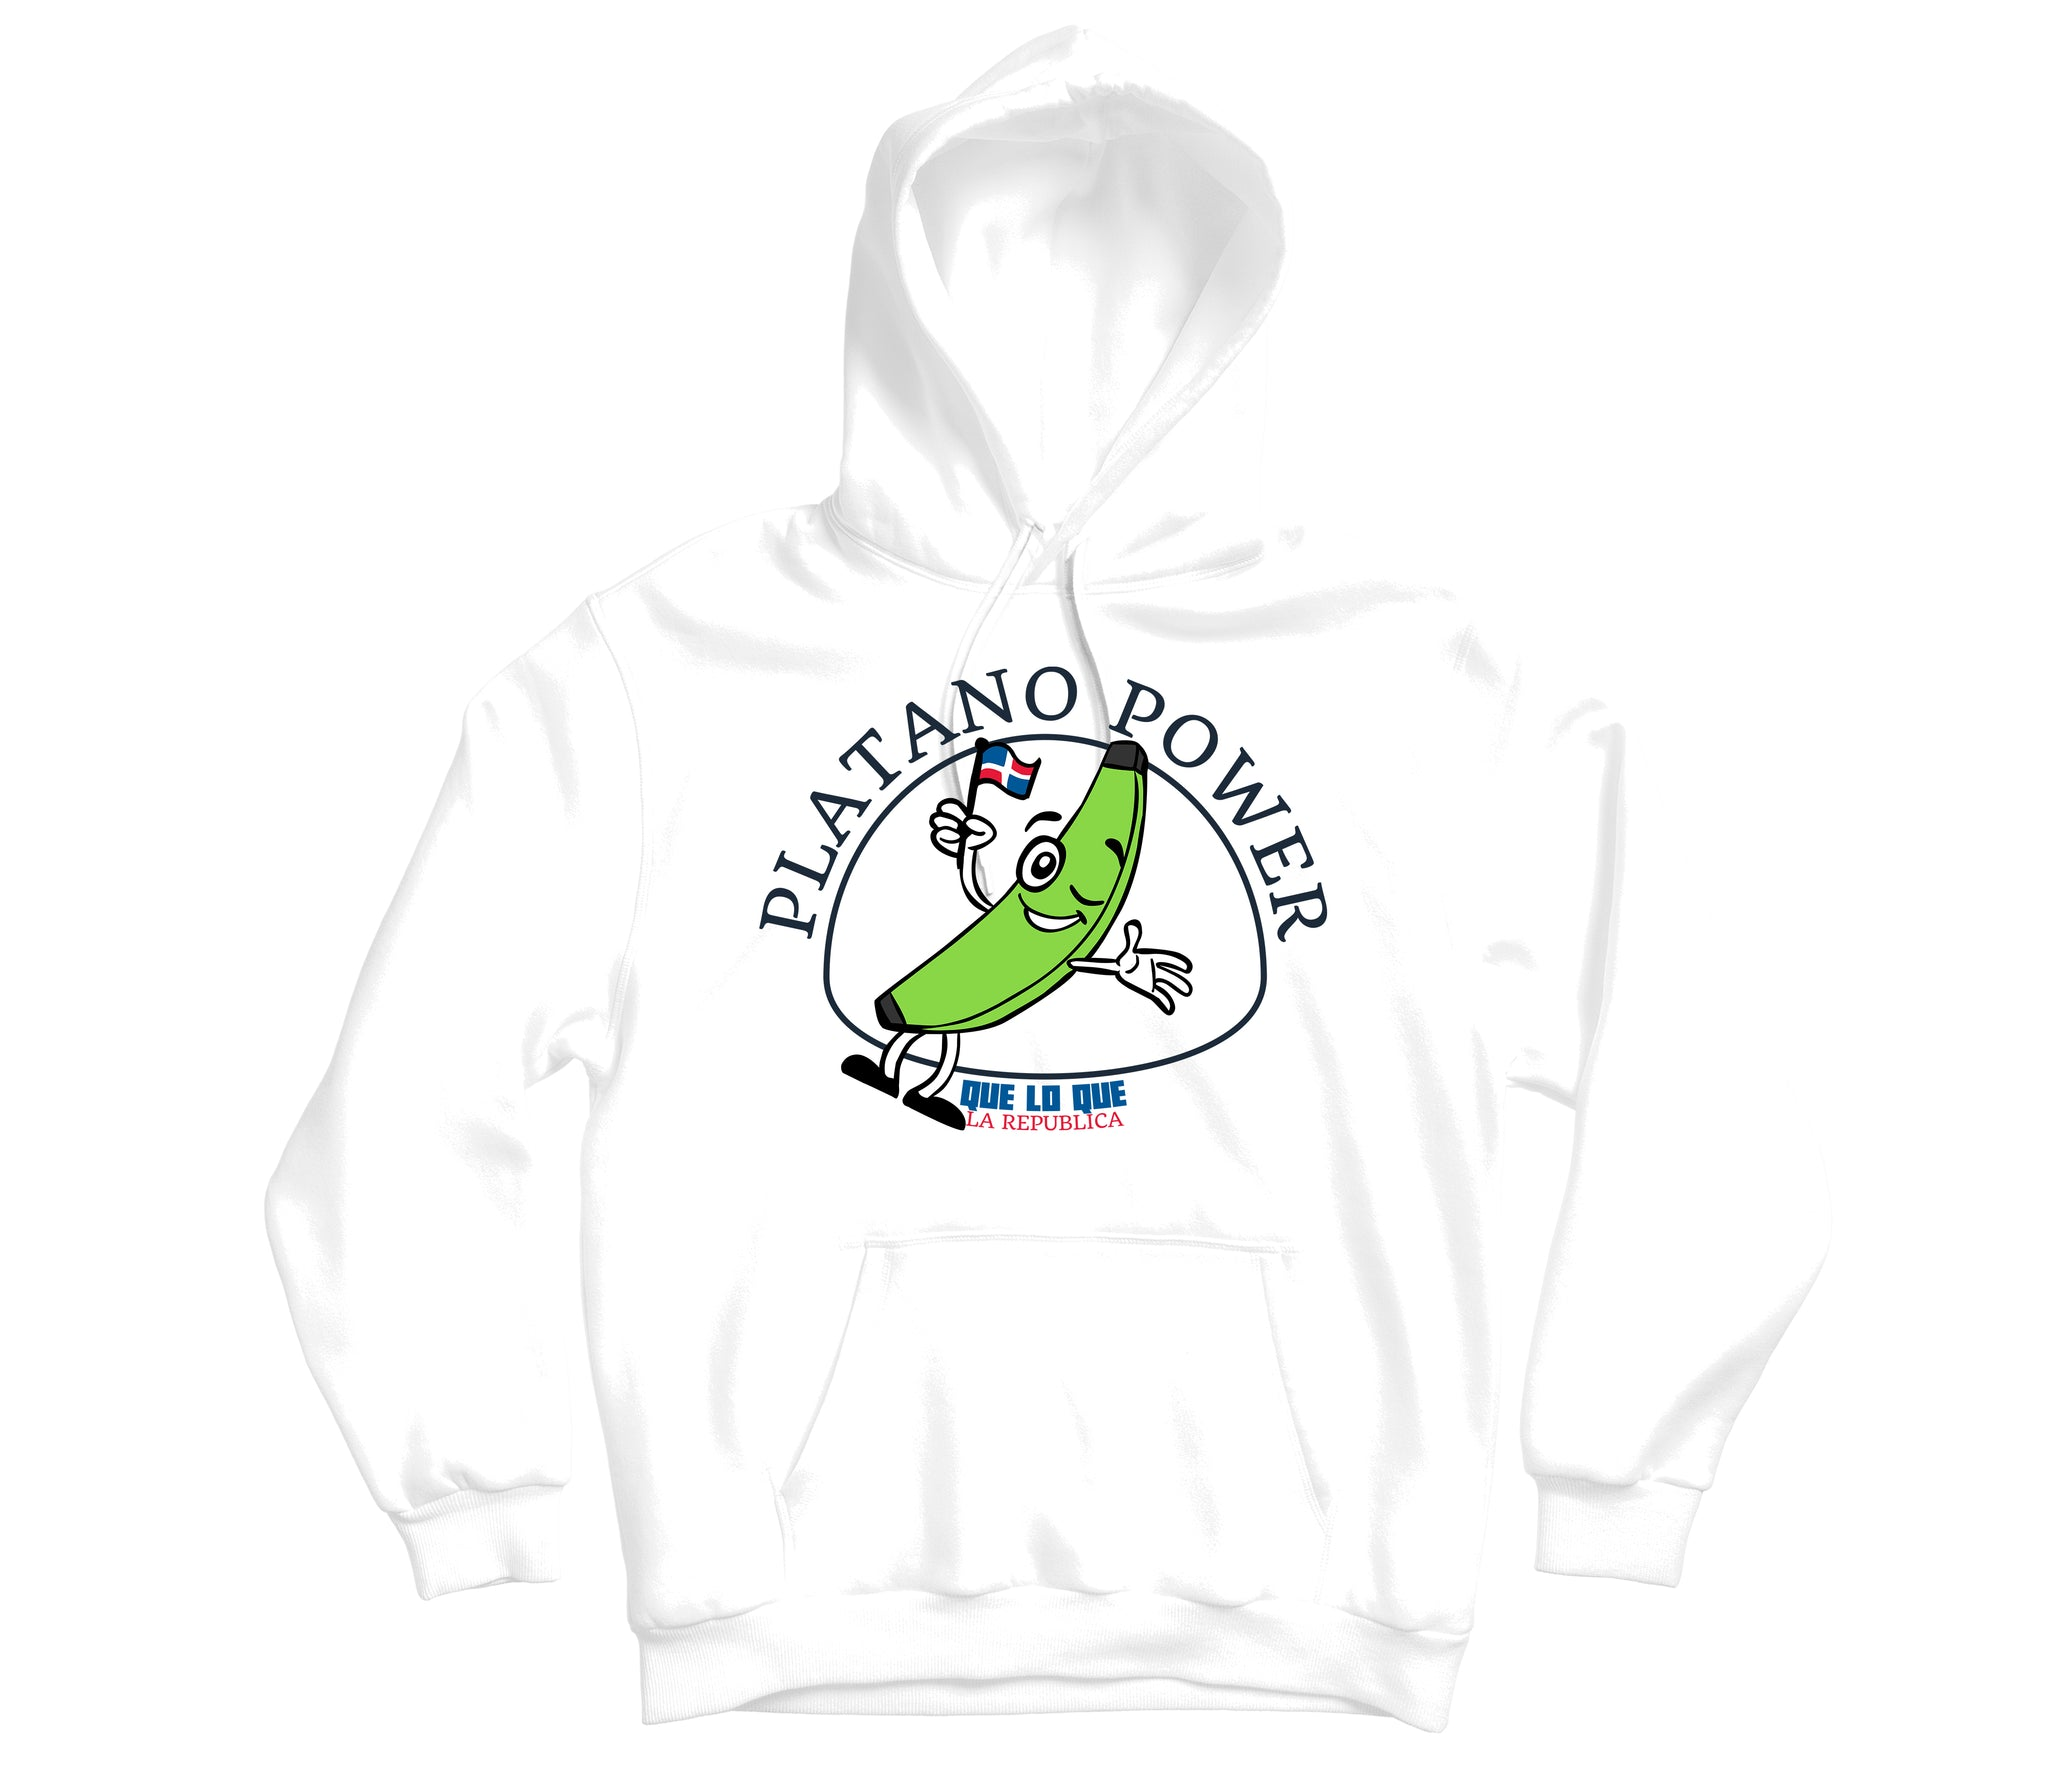 Platano Power HOODIE - Dominican - TOPS, TSS CUSTOM GRPHX, SNEAKER STUDIO, GOLDEN GILT, DESIGN BY TSS